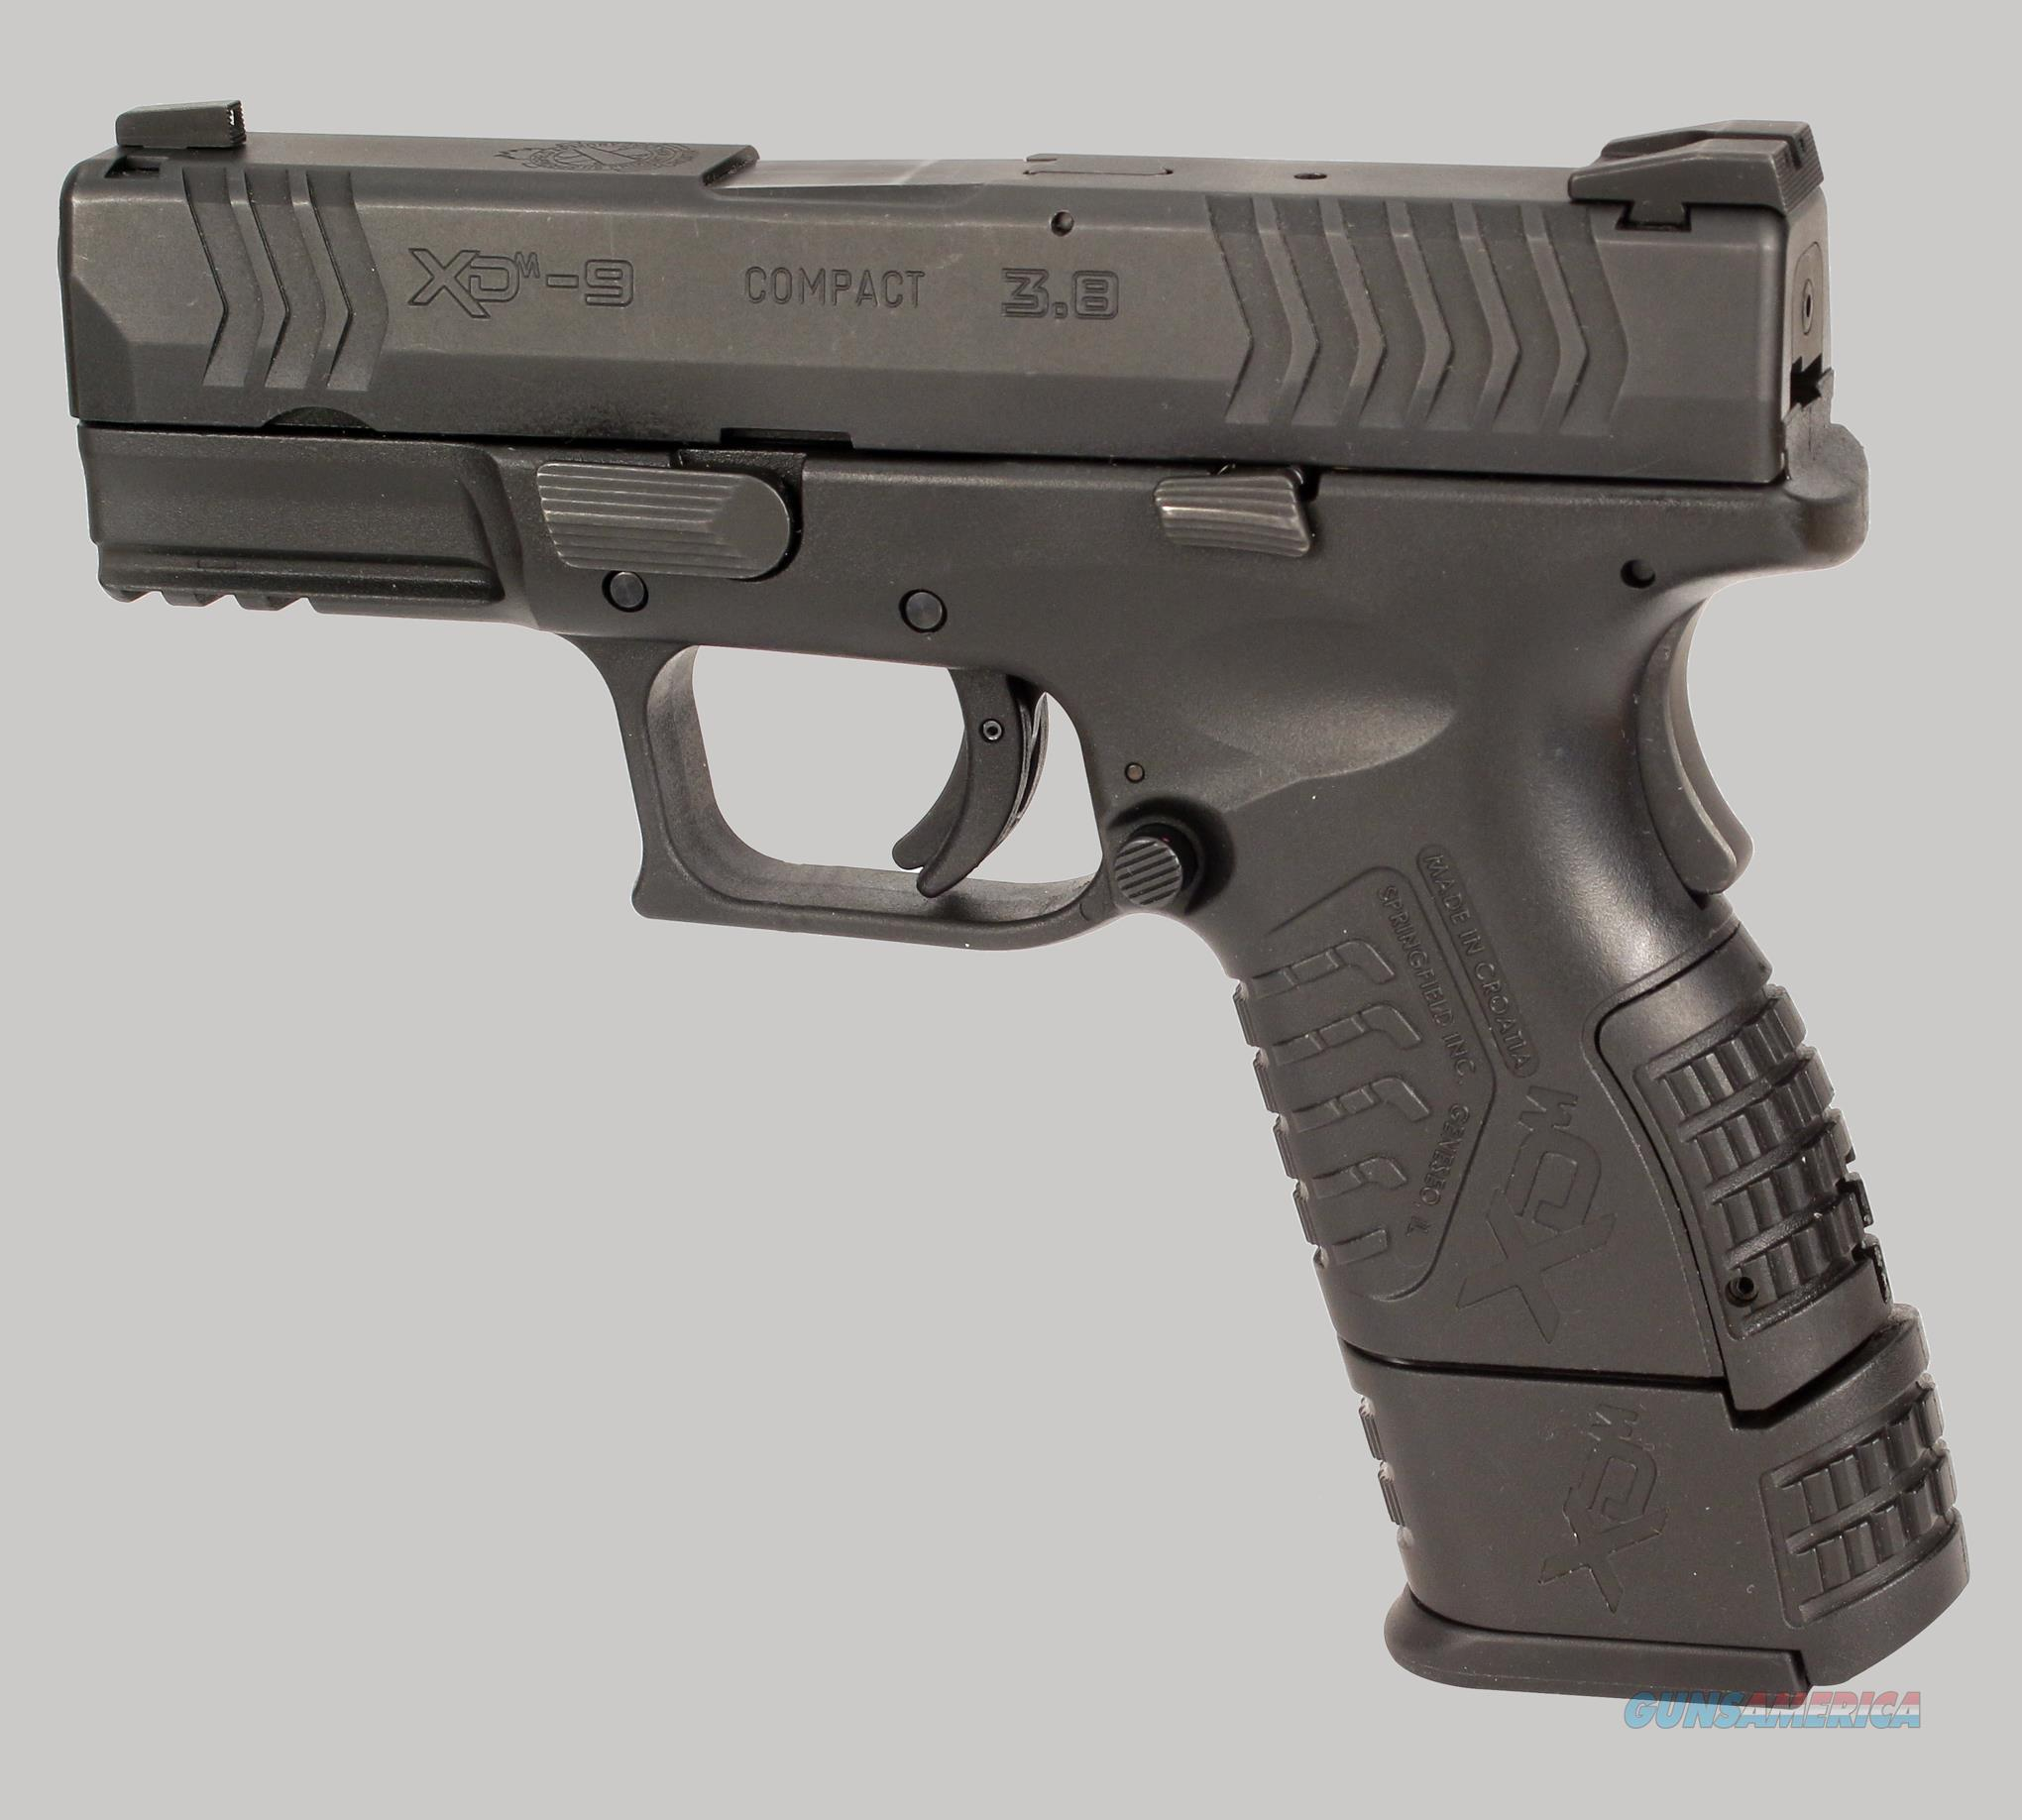 Springfield Armory XD-9 Compact Pistol for sale